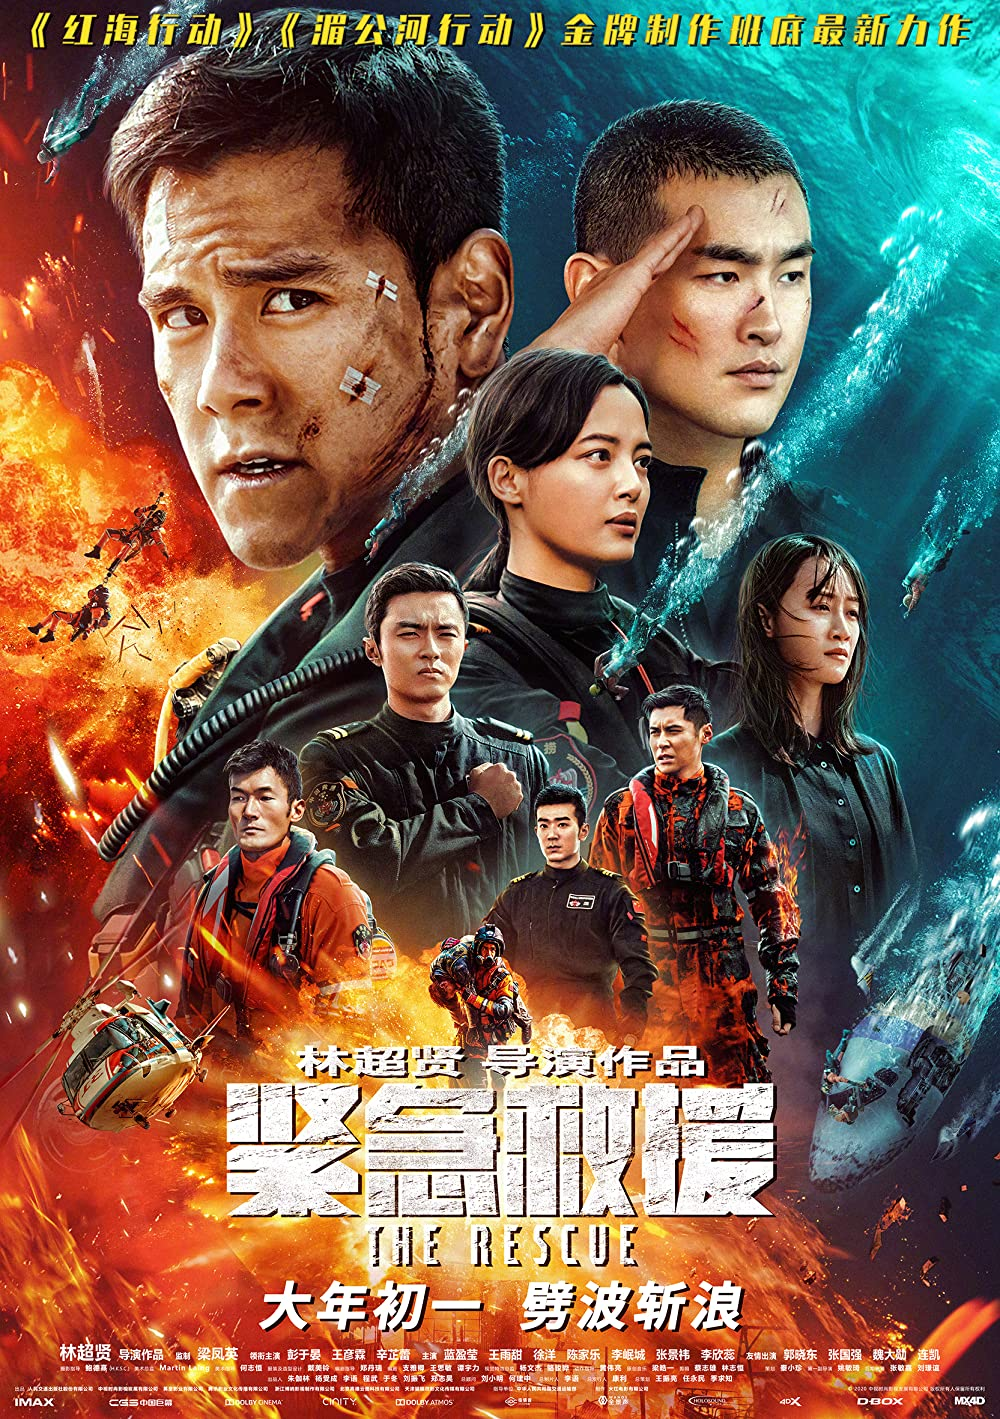 The Rescue 2020 Chinese 405MB HDRip Download